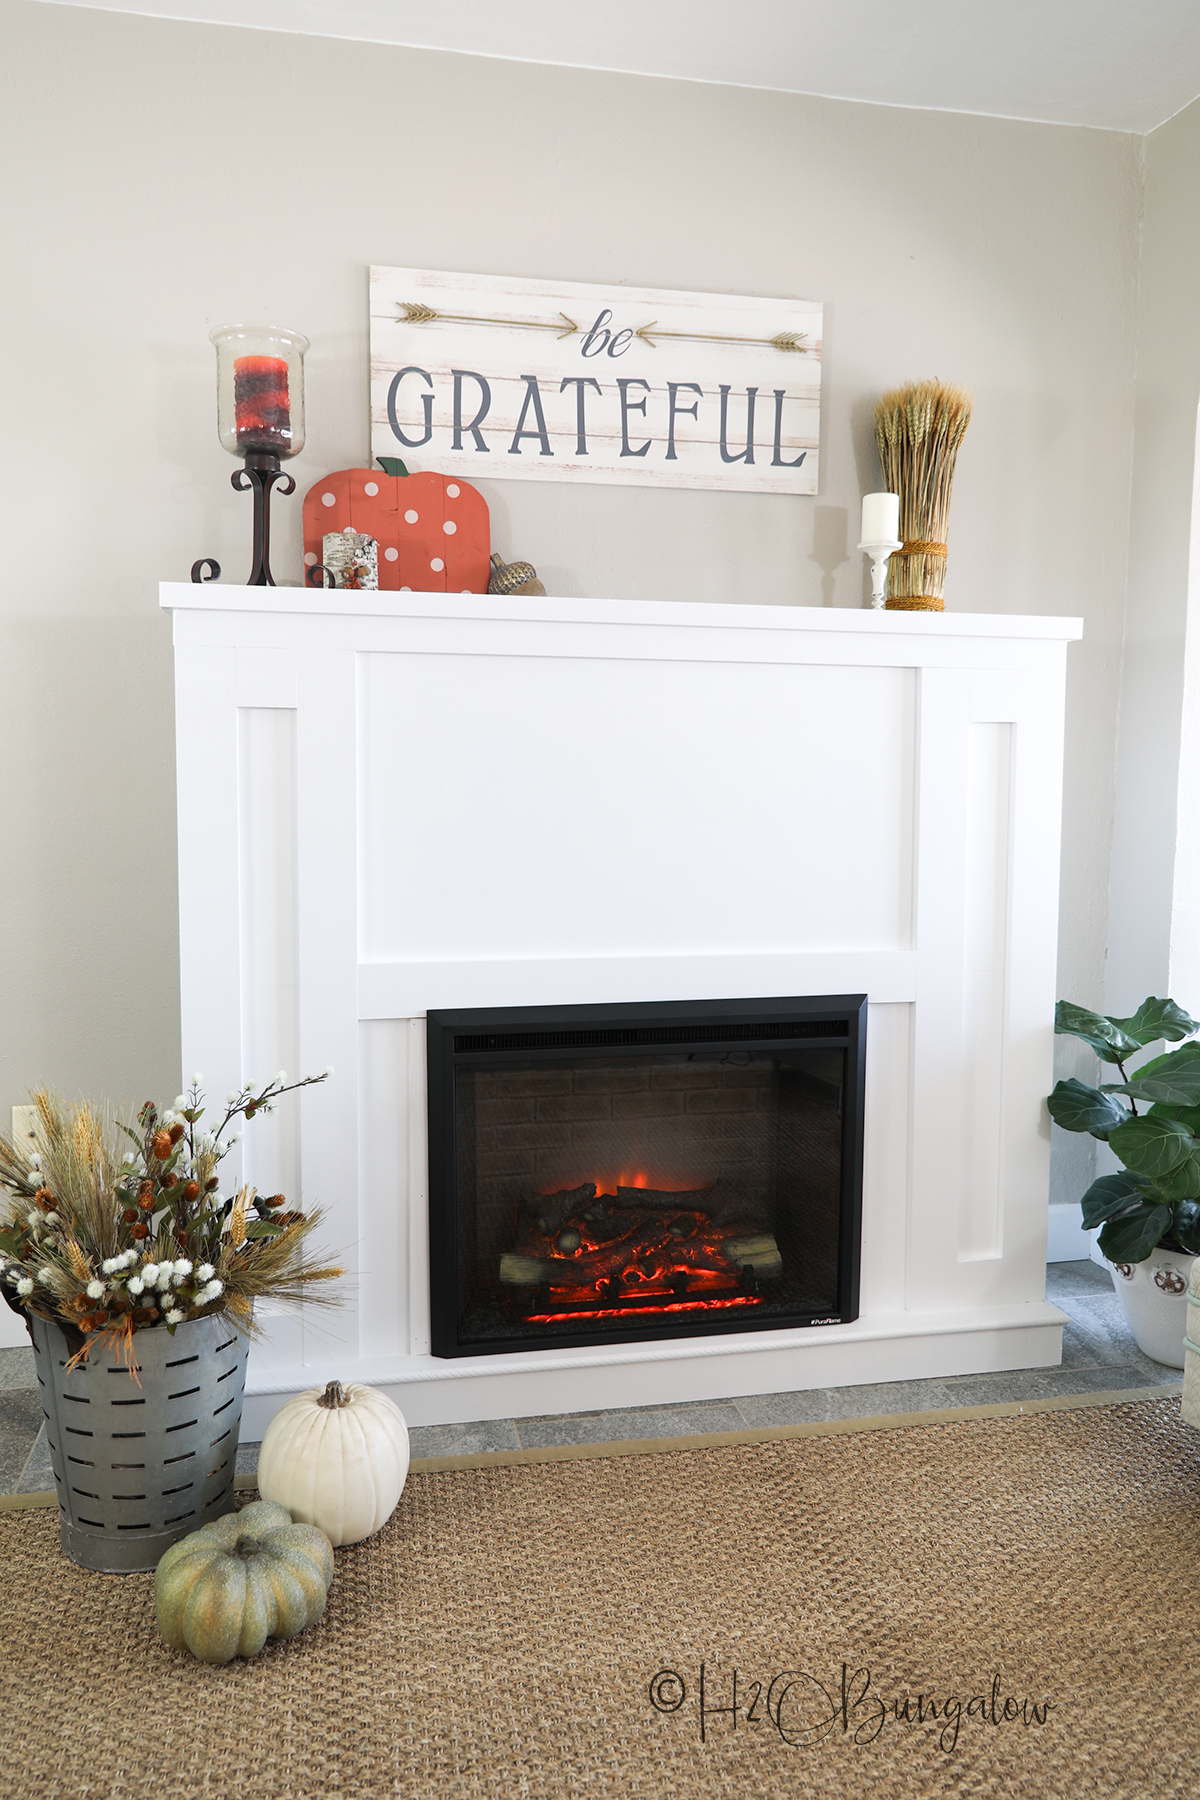 completed DIY fireplace with an electric insert shown with be grateful sign